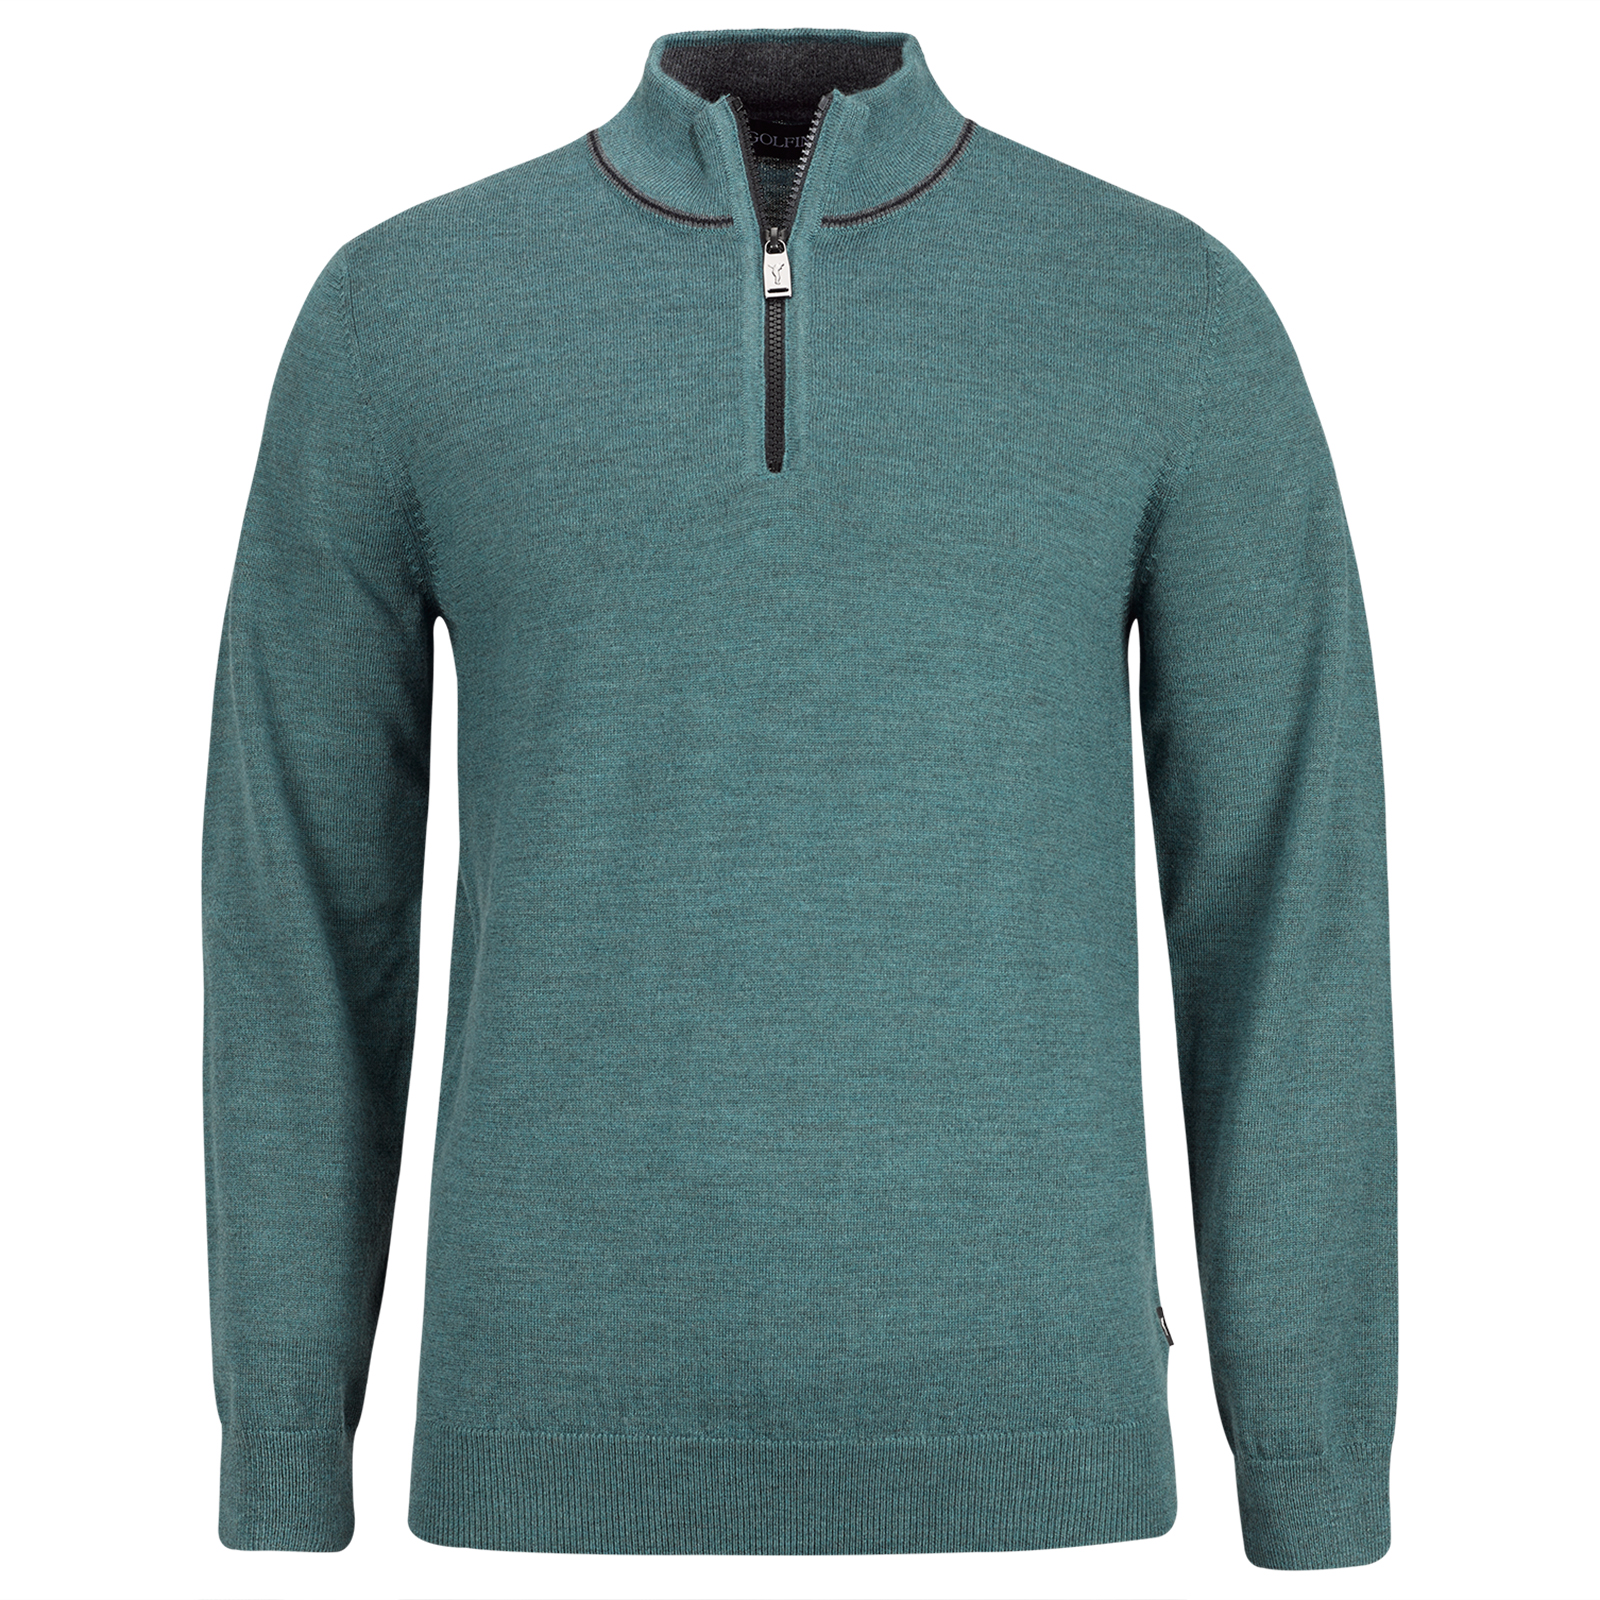 Merino Herren Golftroyer mit kurzem Zip in Regular Fit